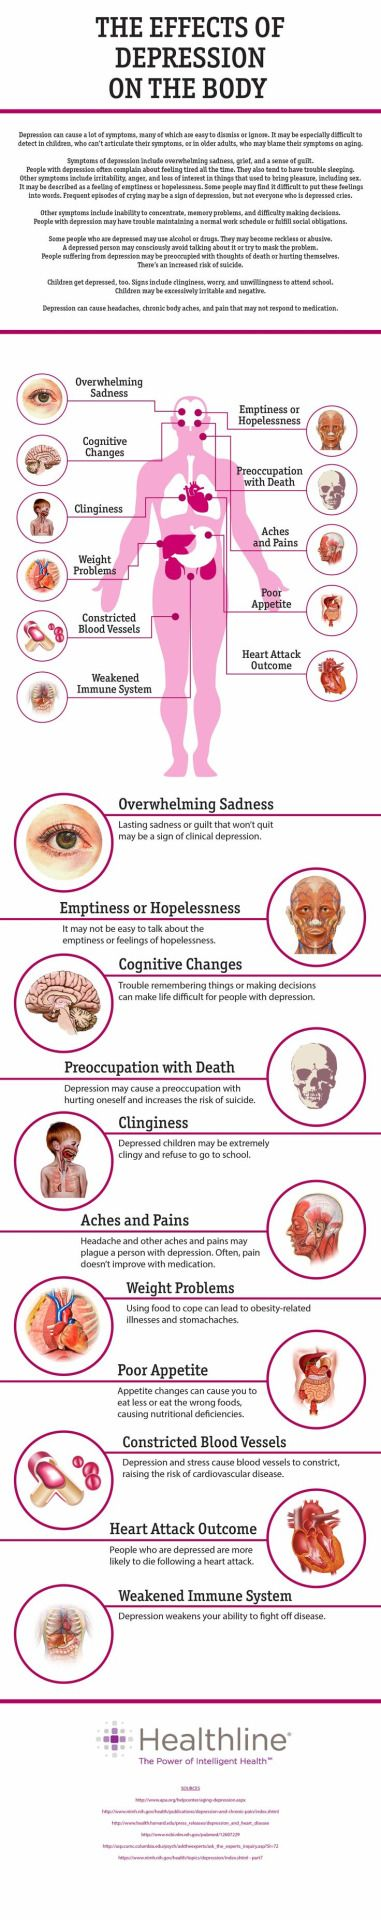 Effects of Depression on Your Body.